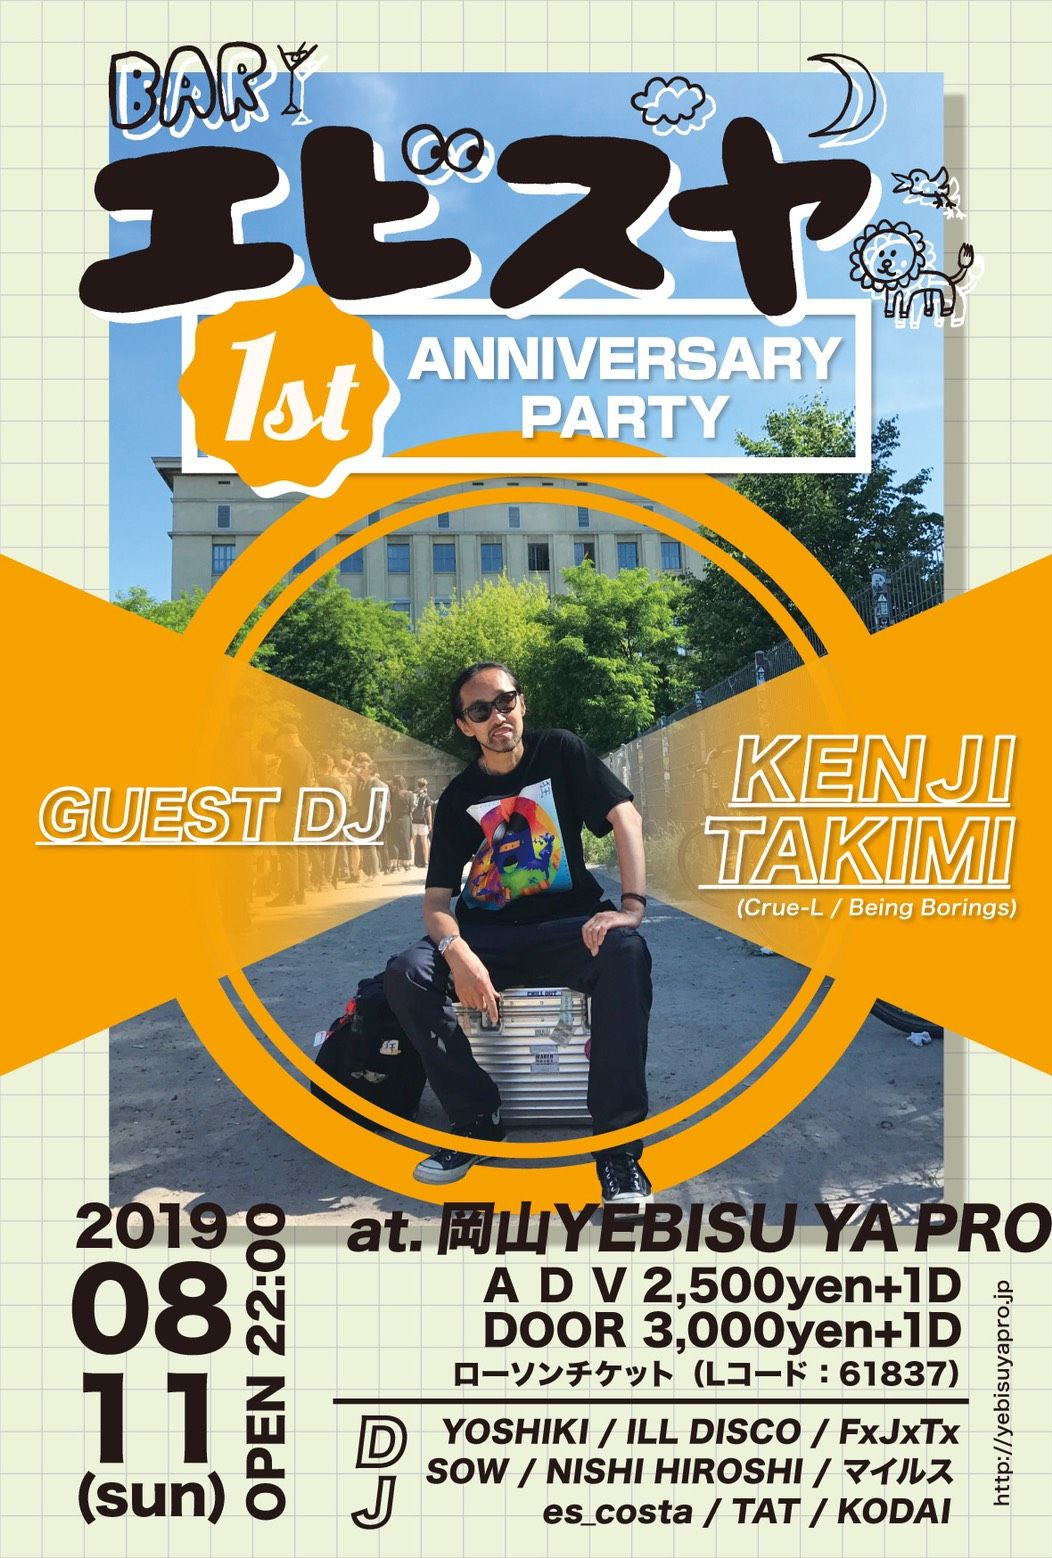 BARエビスヤ 1st ANNIVERSARY PARTY